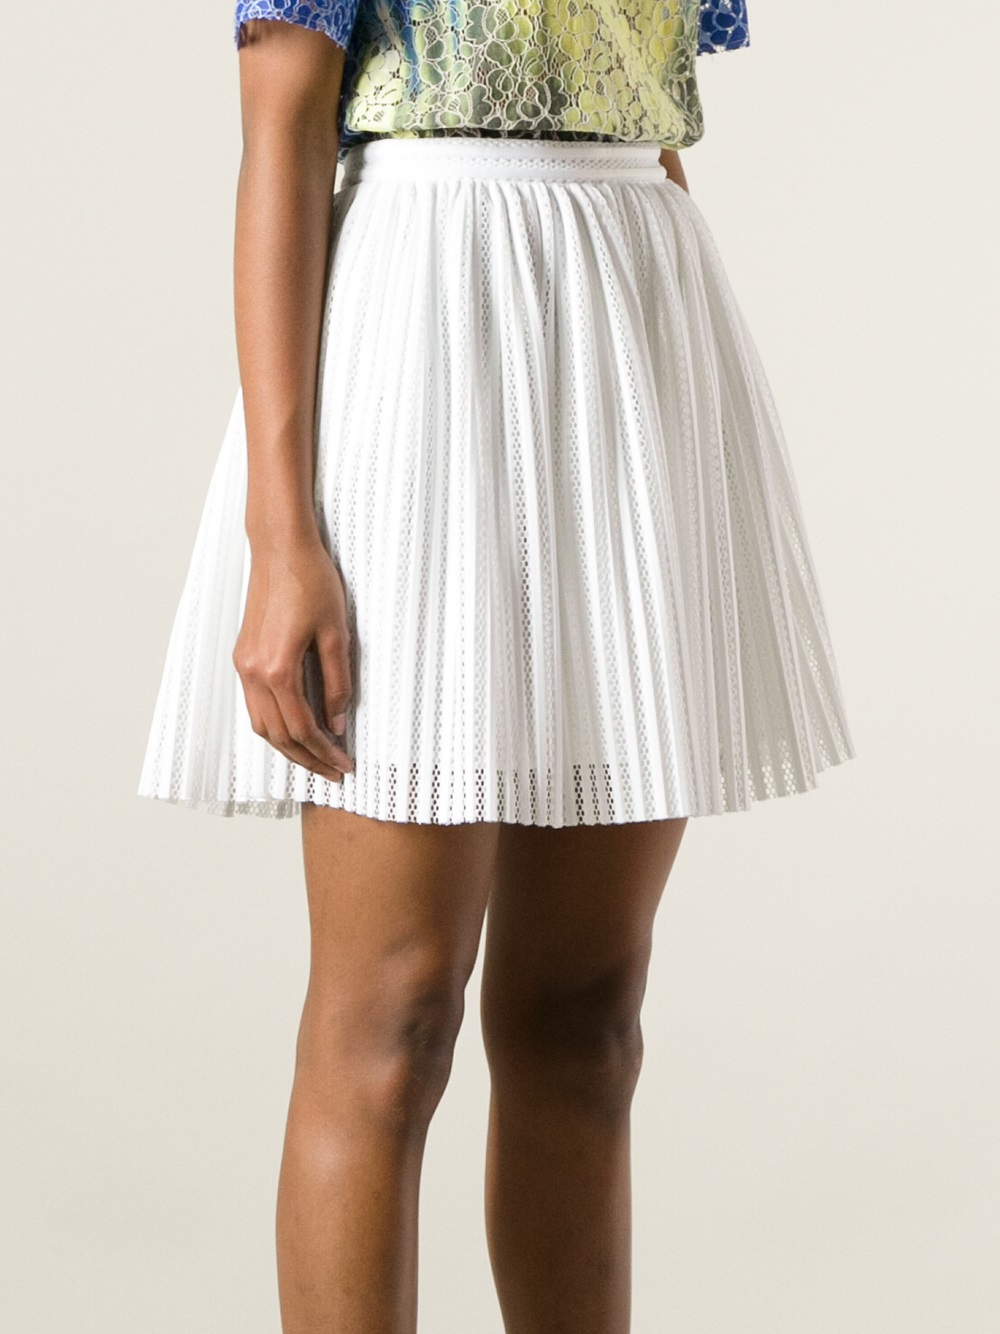 White Pleated Skirt Dress Ala